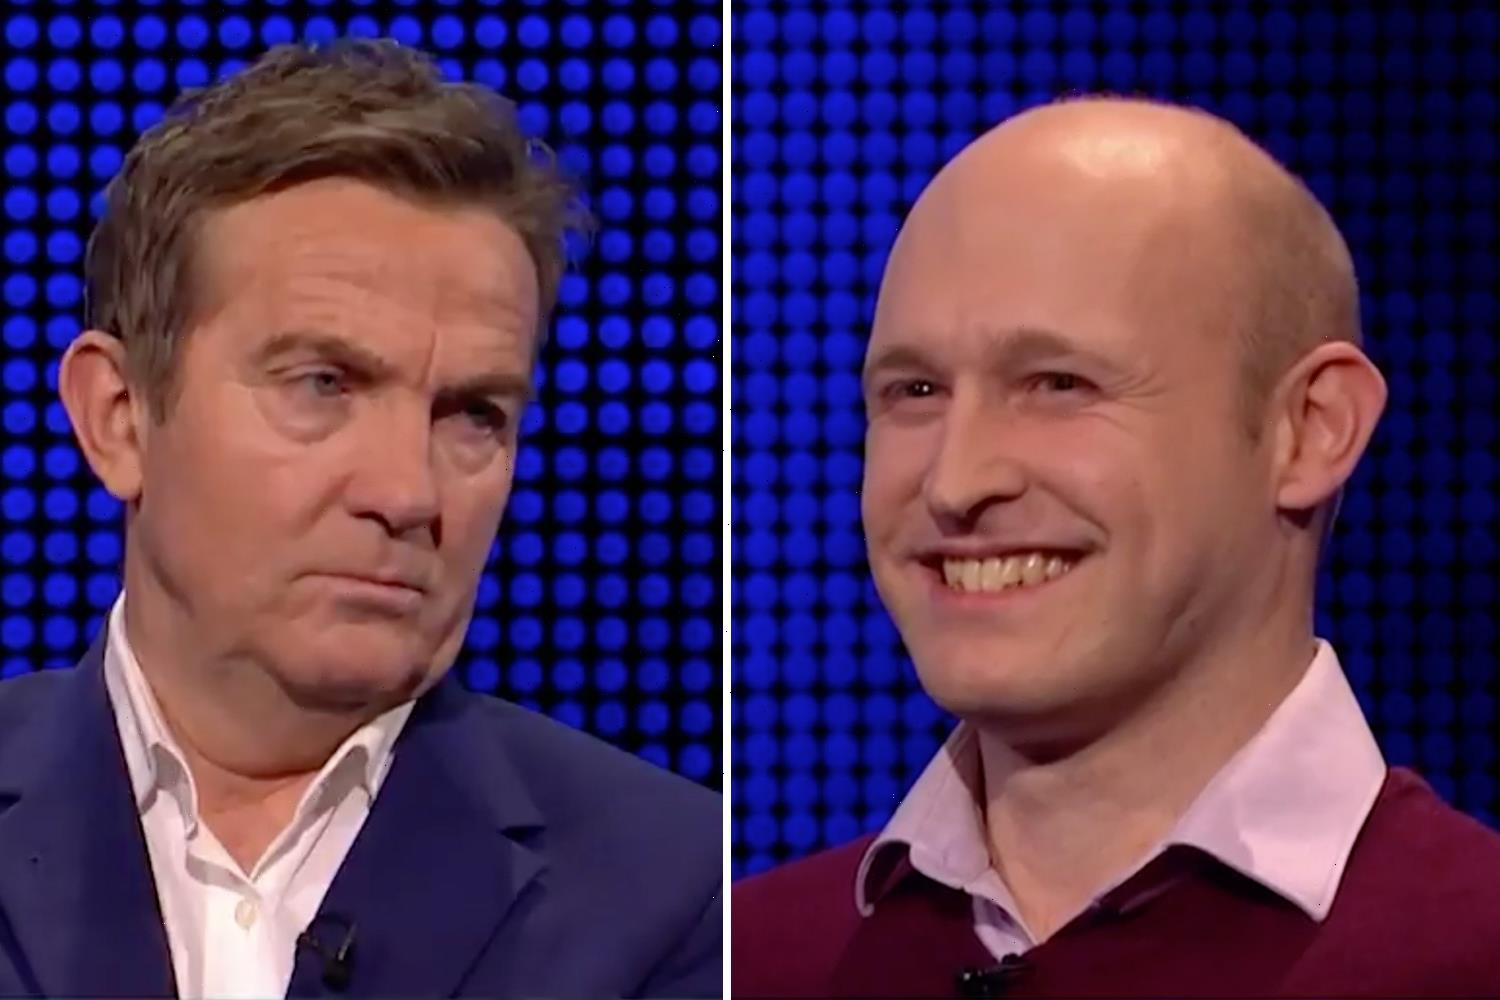 Bradley Walsh silences 'desperate' The Chase player as he accuses him of being a SPY